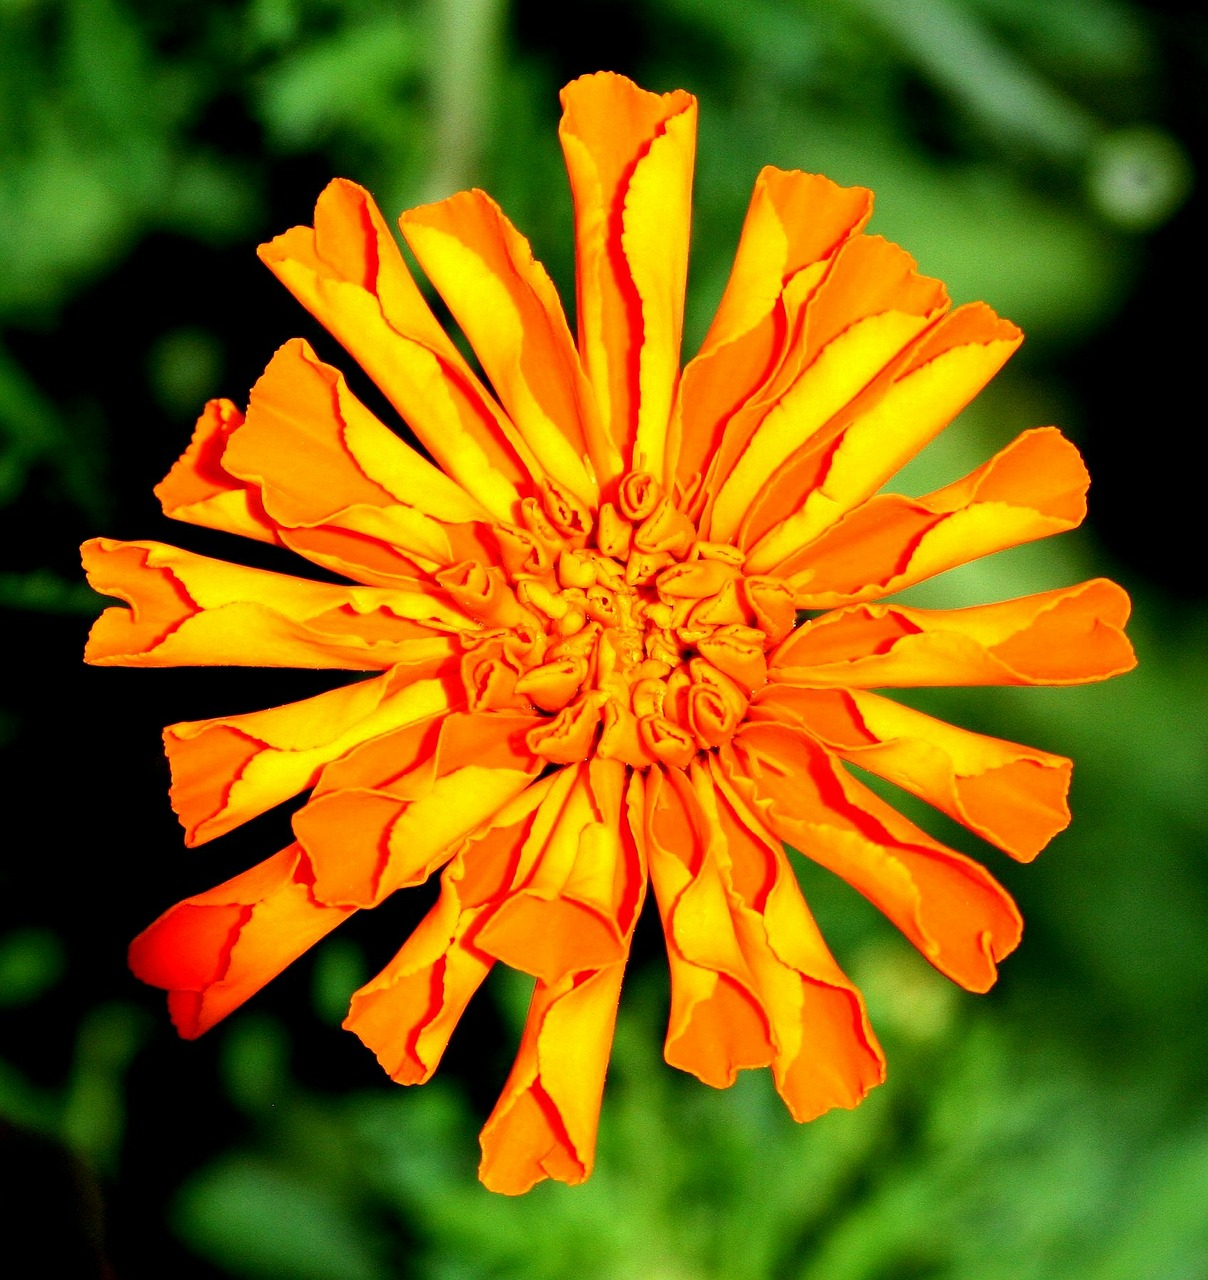 marigold,flowers,blossom,fresh,floral,summer,botanical,natural,blooming,petal,growth,botany,garden,floral mandala,season,pollen,vibrant,stem,cheerful,colourful,life,vivid,stems,summertime,bud,decoration,perennial,environment,ecology,ornament,landscape,flourish,grow,leaf,foliage,ornamental,decorative,elegant,nature,plant,orange,bright,colorful,free pictures, free photos, free images, royalty free, free illustrations, public domain